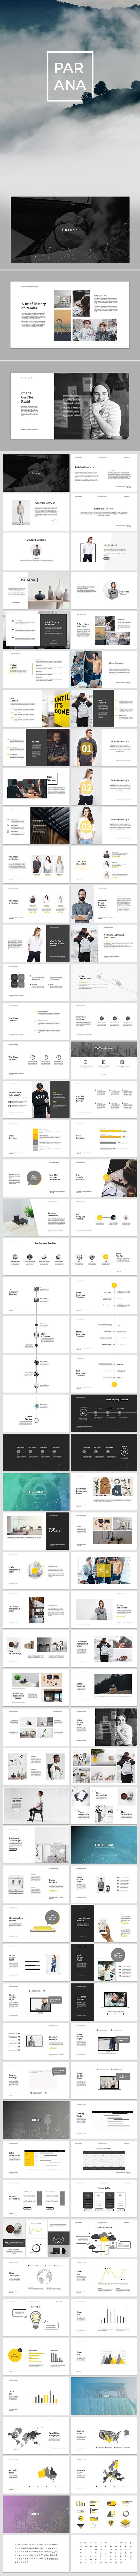 Parana Powerpoint Presentation  #travel #corporate • Download ➝ https://graphicriver.net/item/parana-powerpoint-presentation/18144668?ref=pxcr